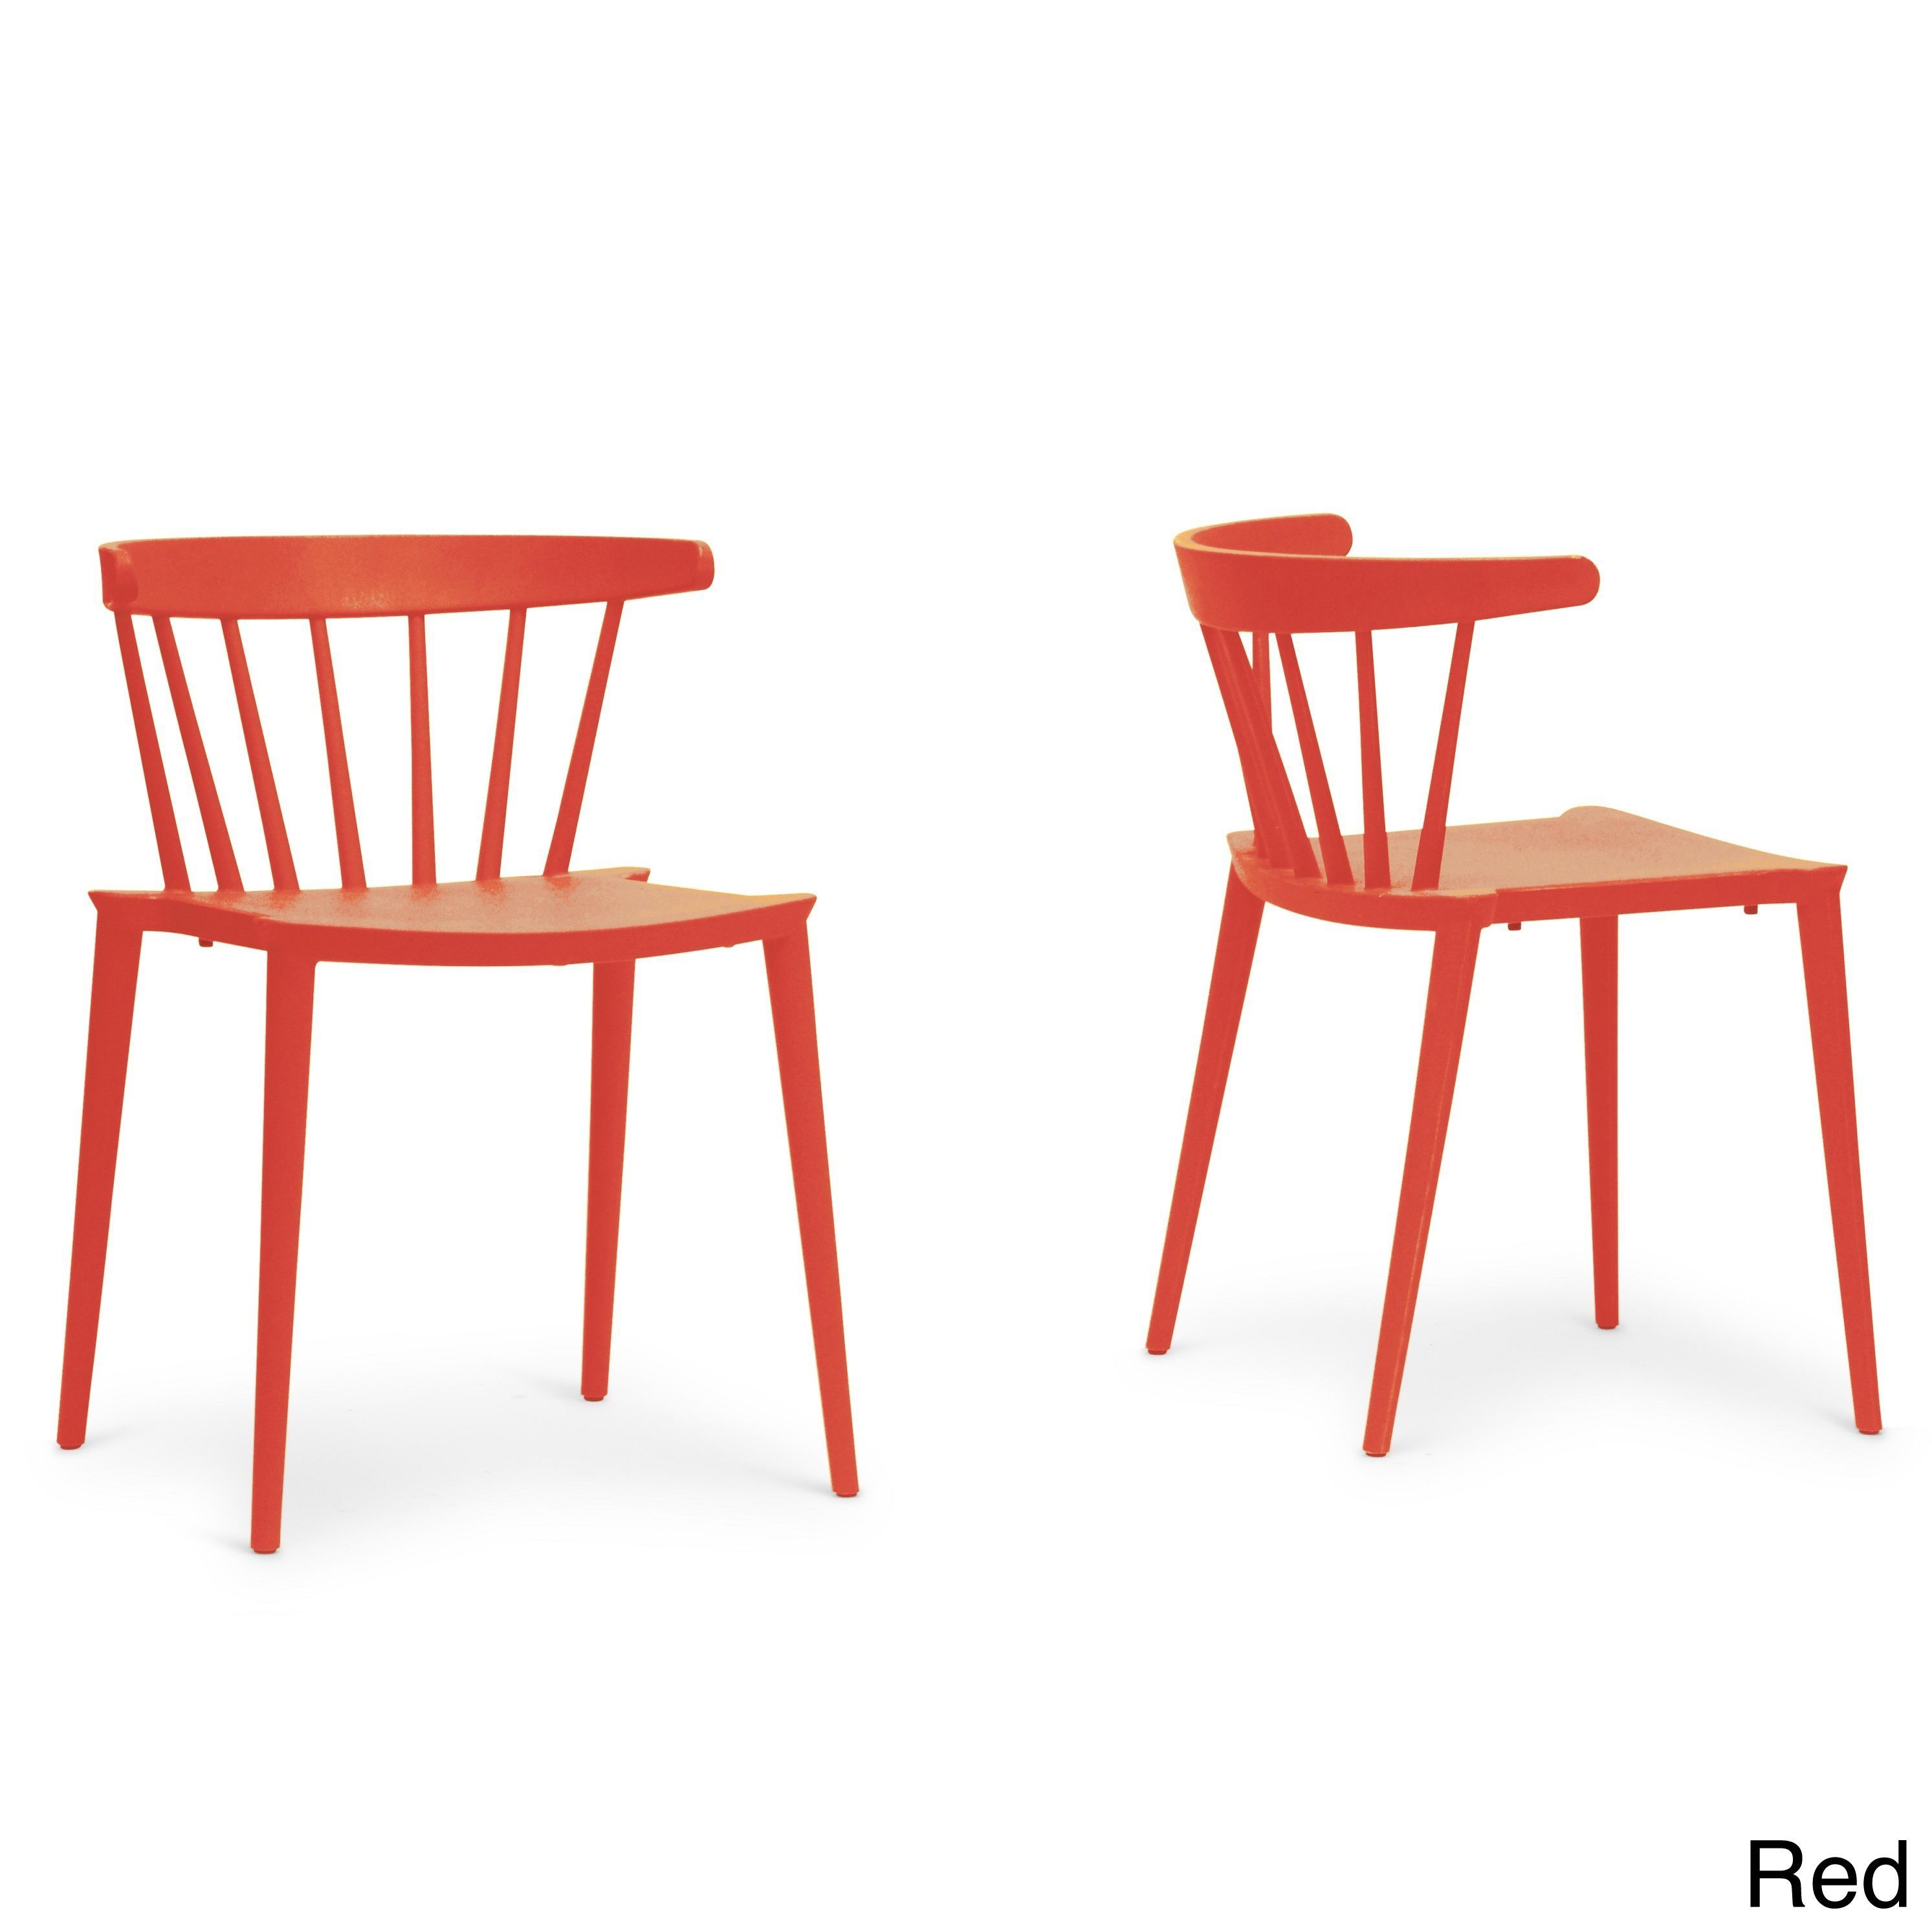 Plastic Dining Chairs Baxton Studio Finchum Red Plastic Stackable Modern Dining